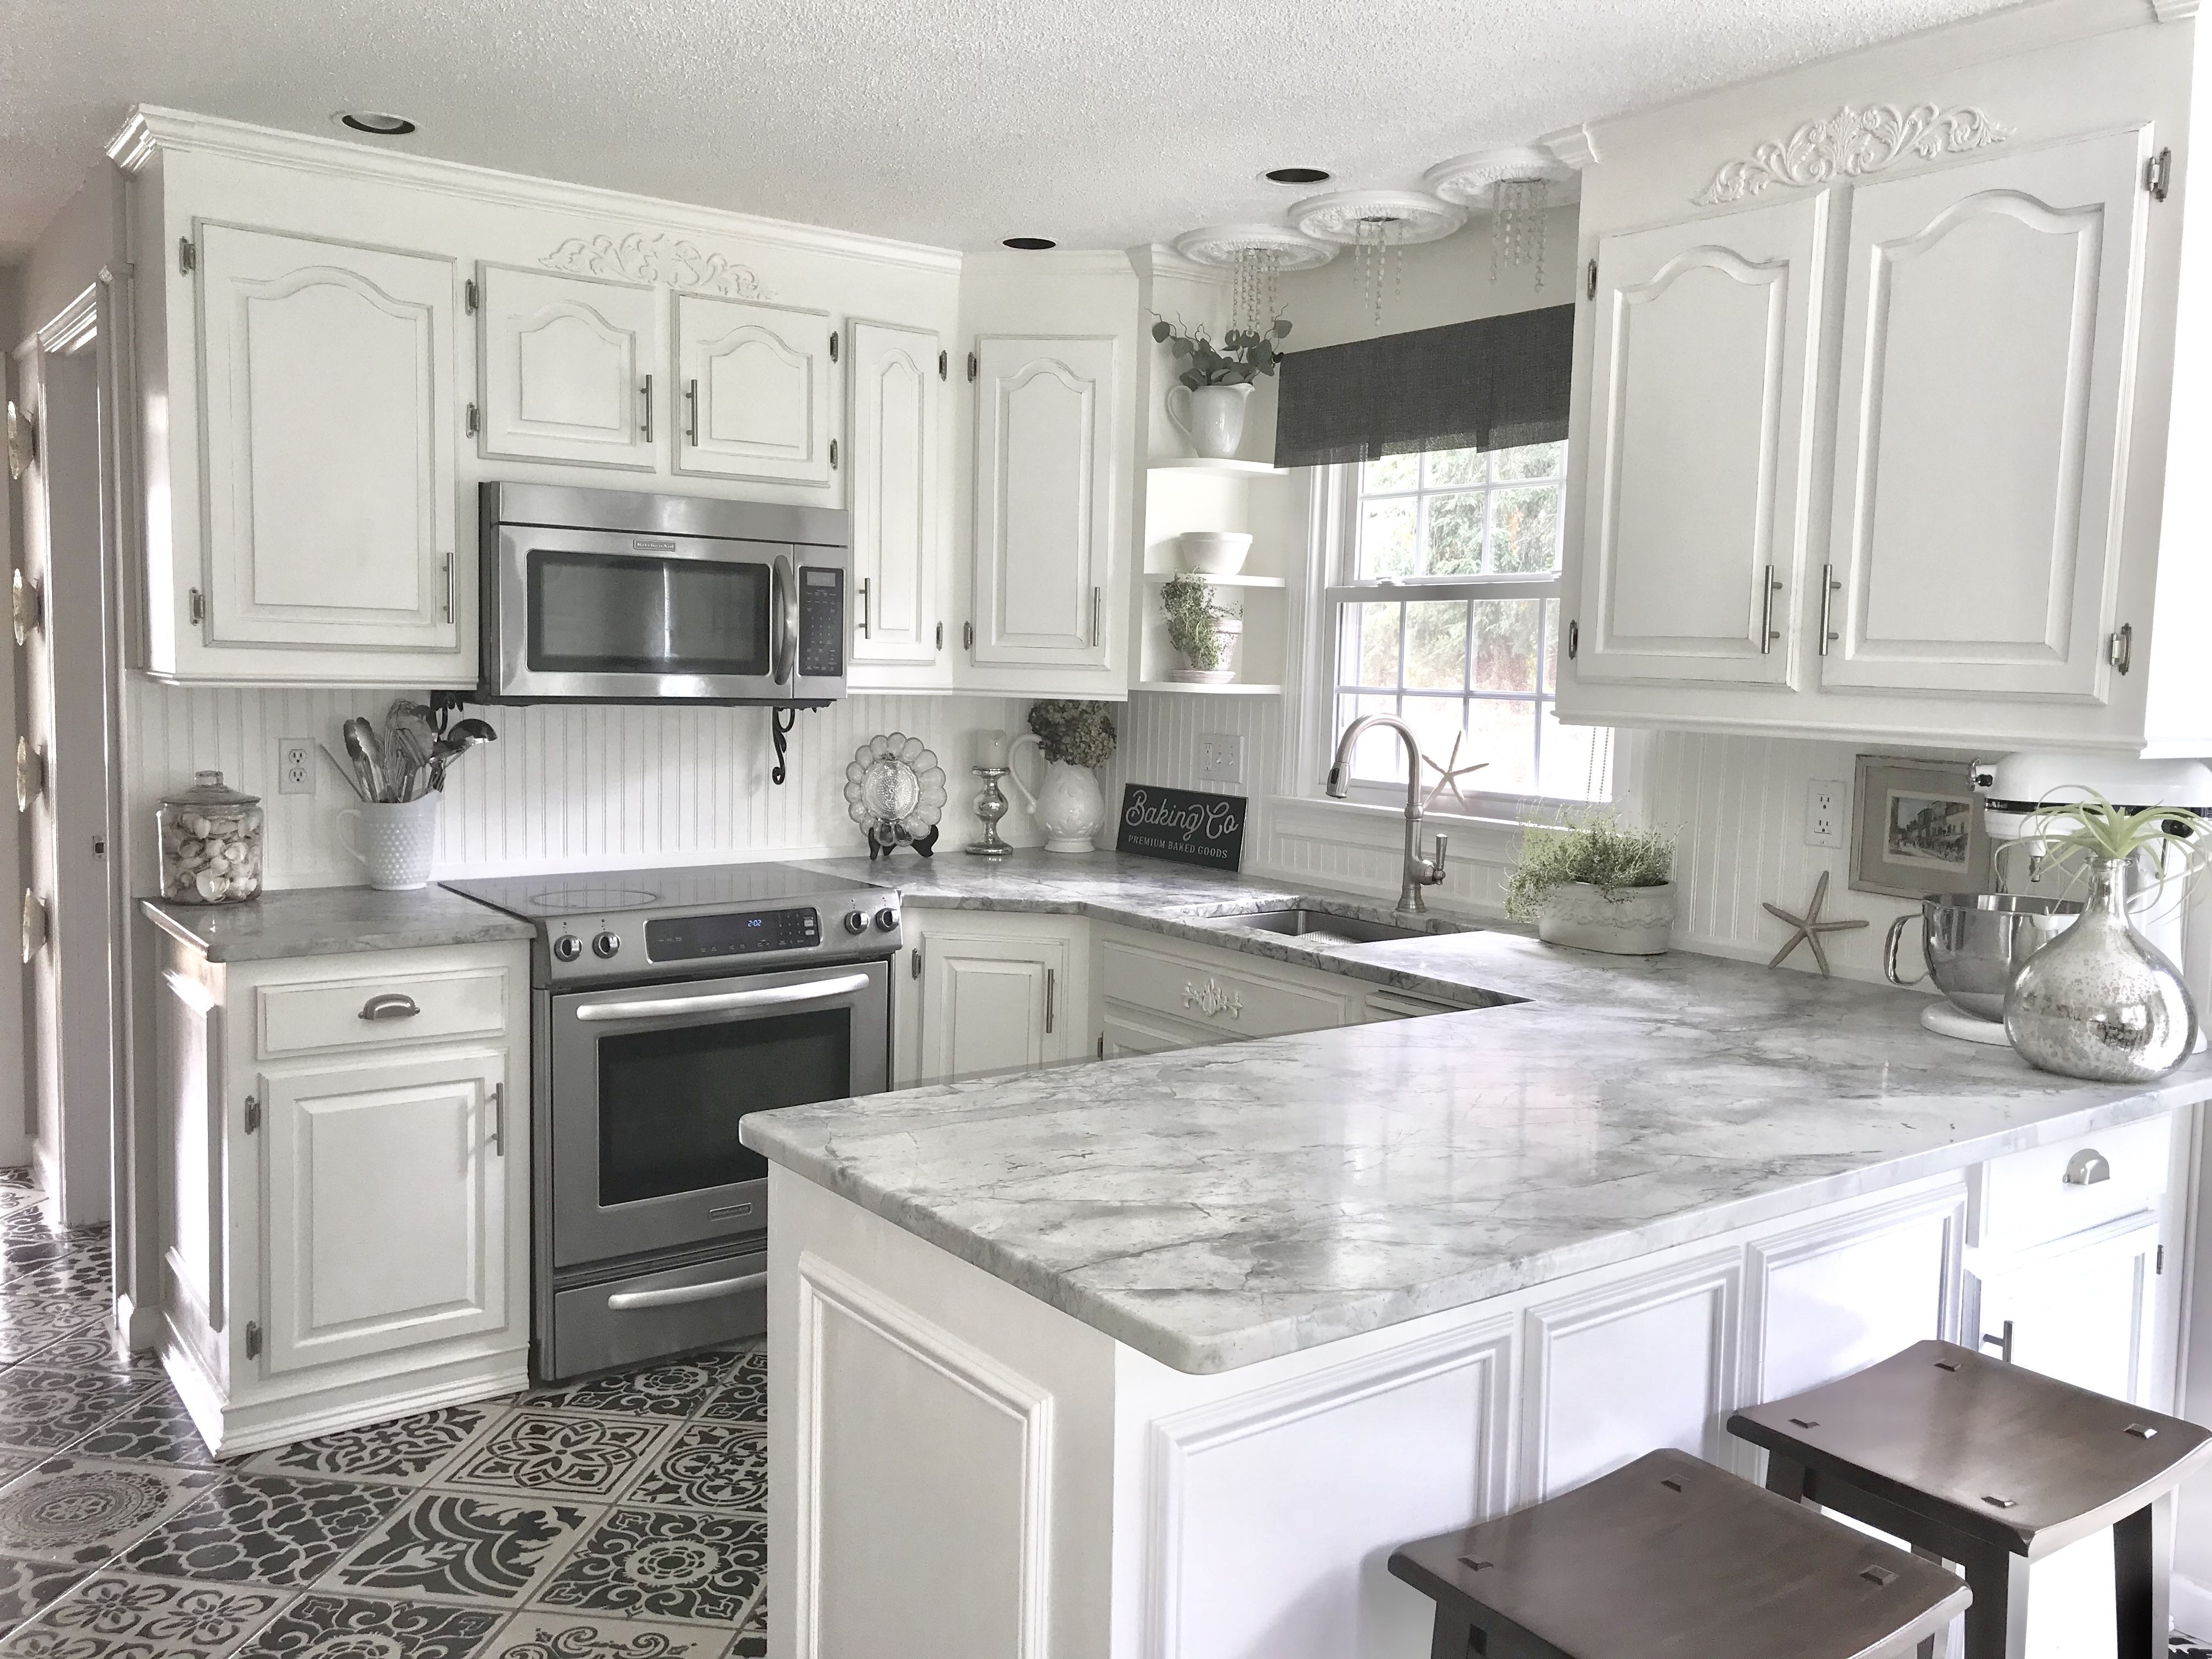 My White Kitchen That Was Once Old Oak Cabinets And Formica Counters Now It S Stylish And So Soothing To Be In Kitchen Redo Kitchen Old Kitchen